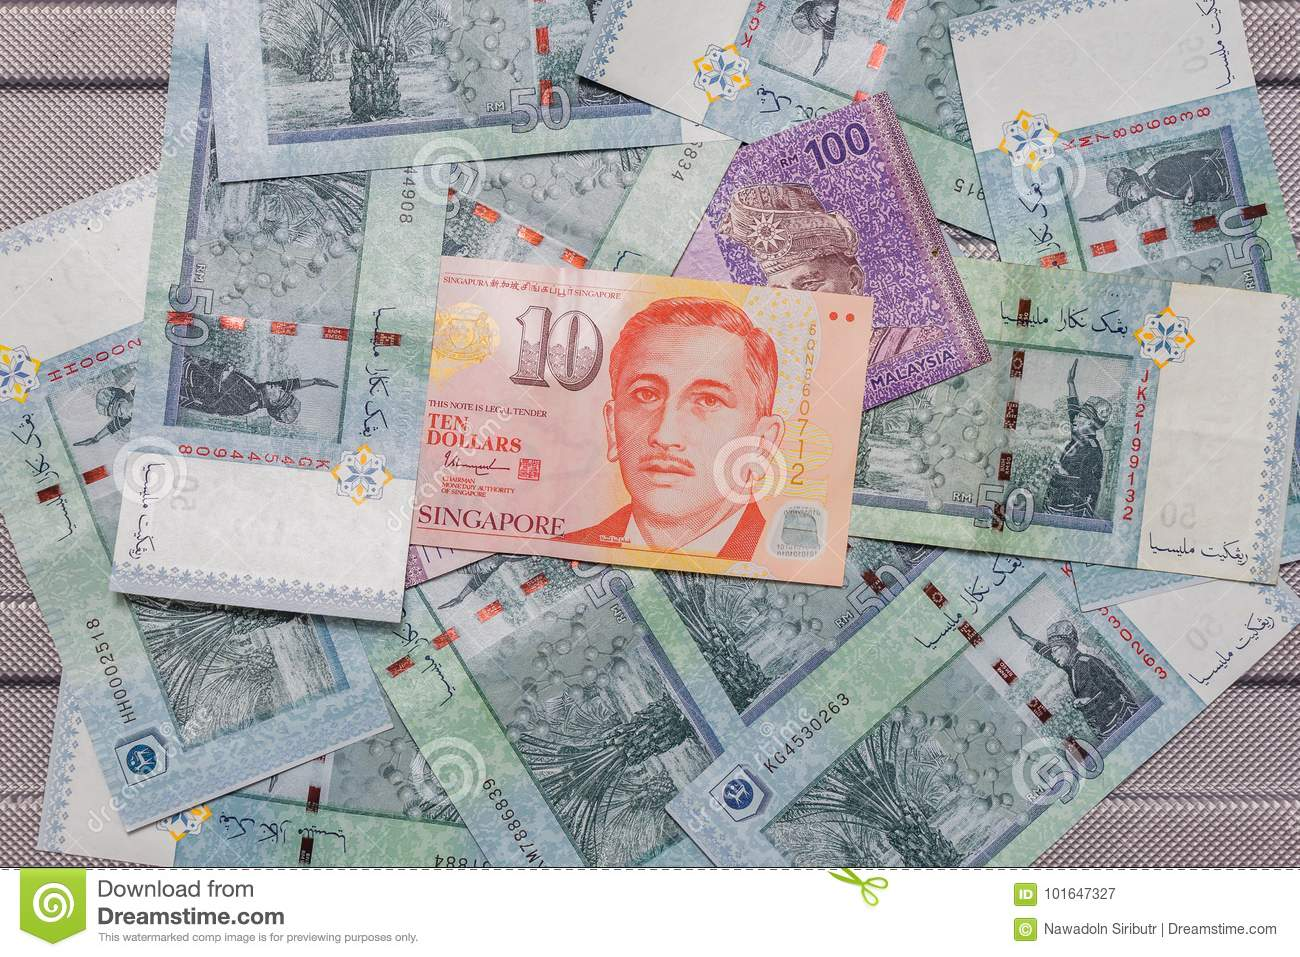 Singapore Dollar On Top Of Malaysian Ringgit Currency On